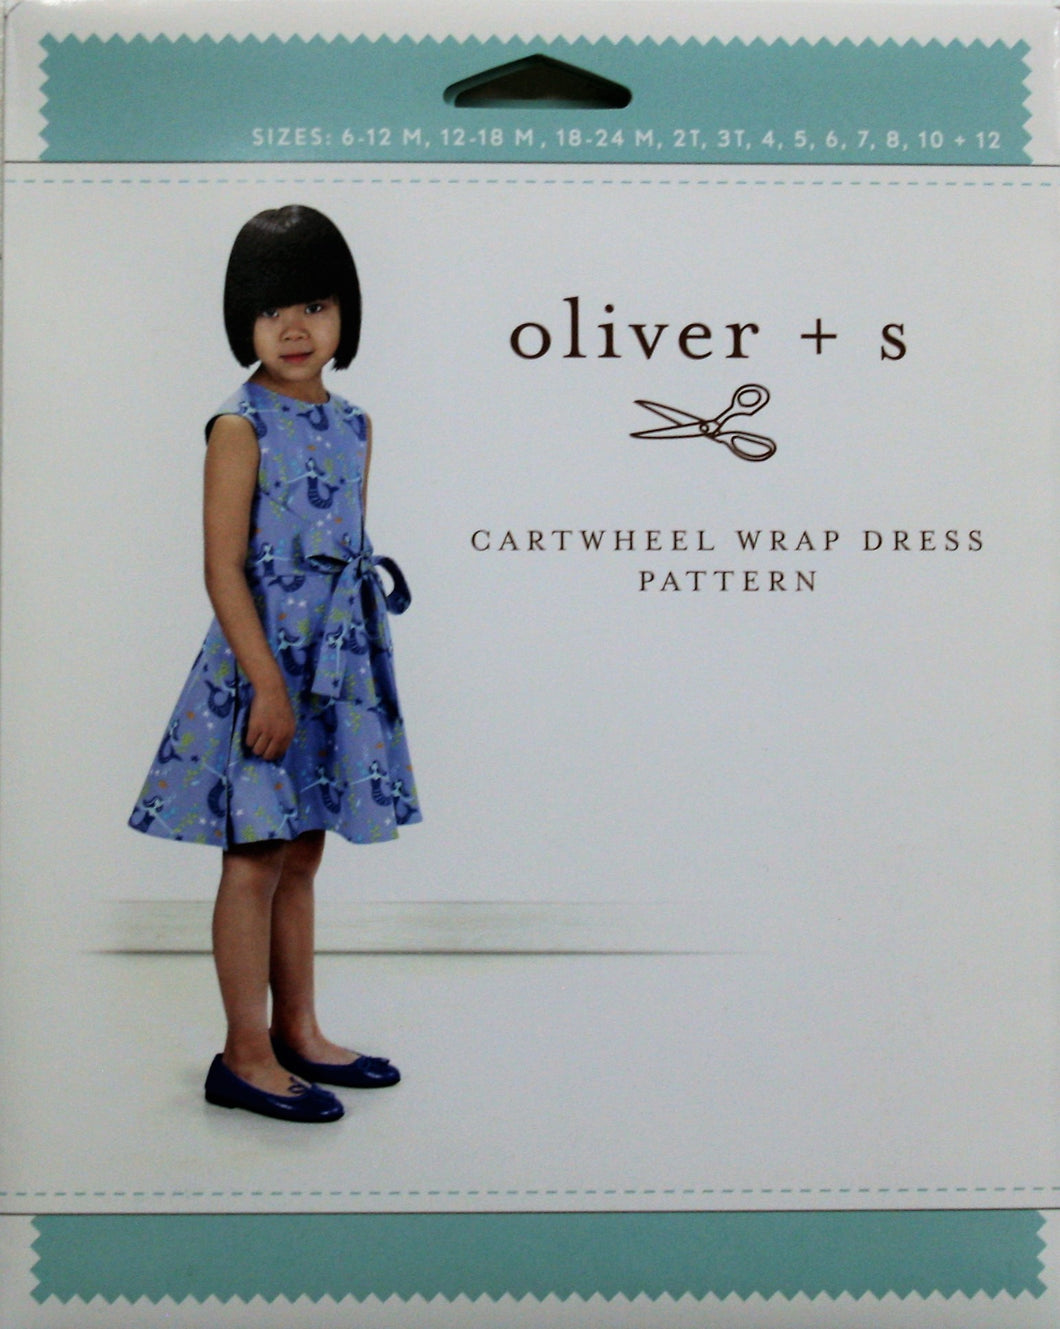 Cartwheel Wrap Dress - oliver + s